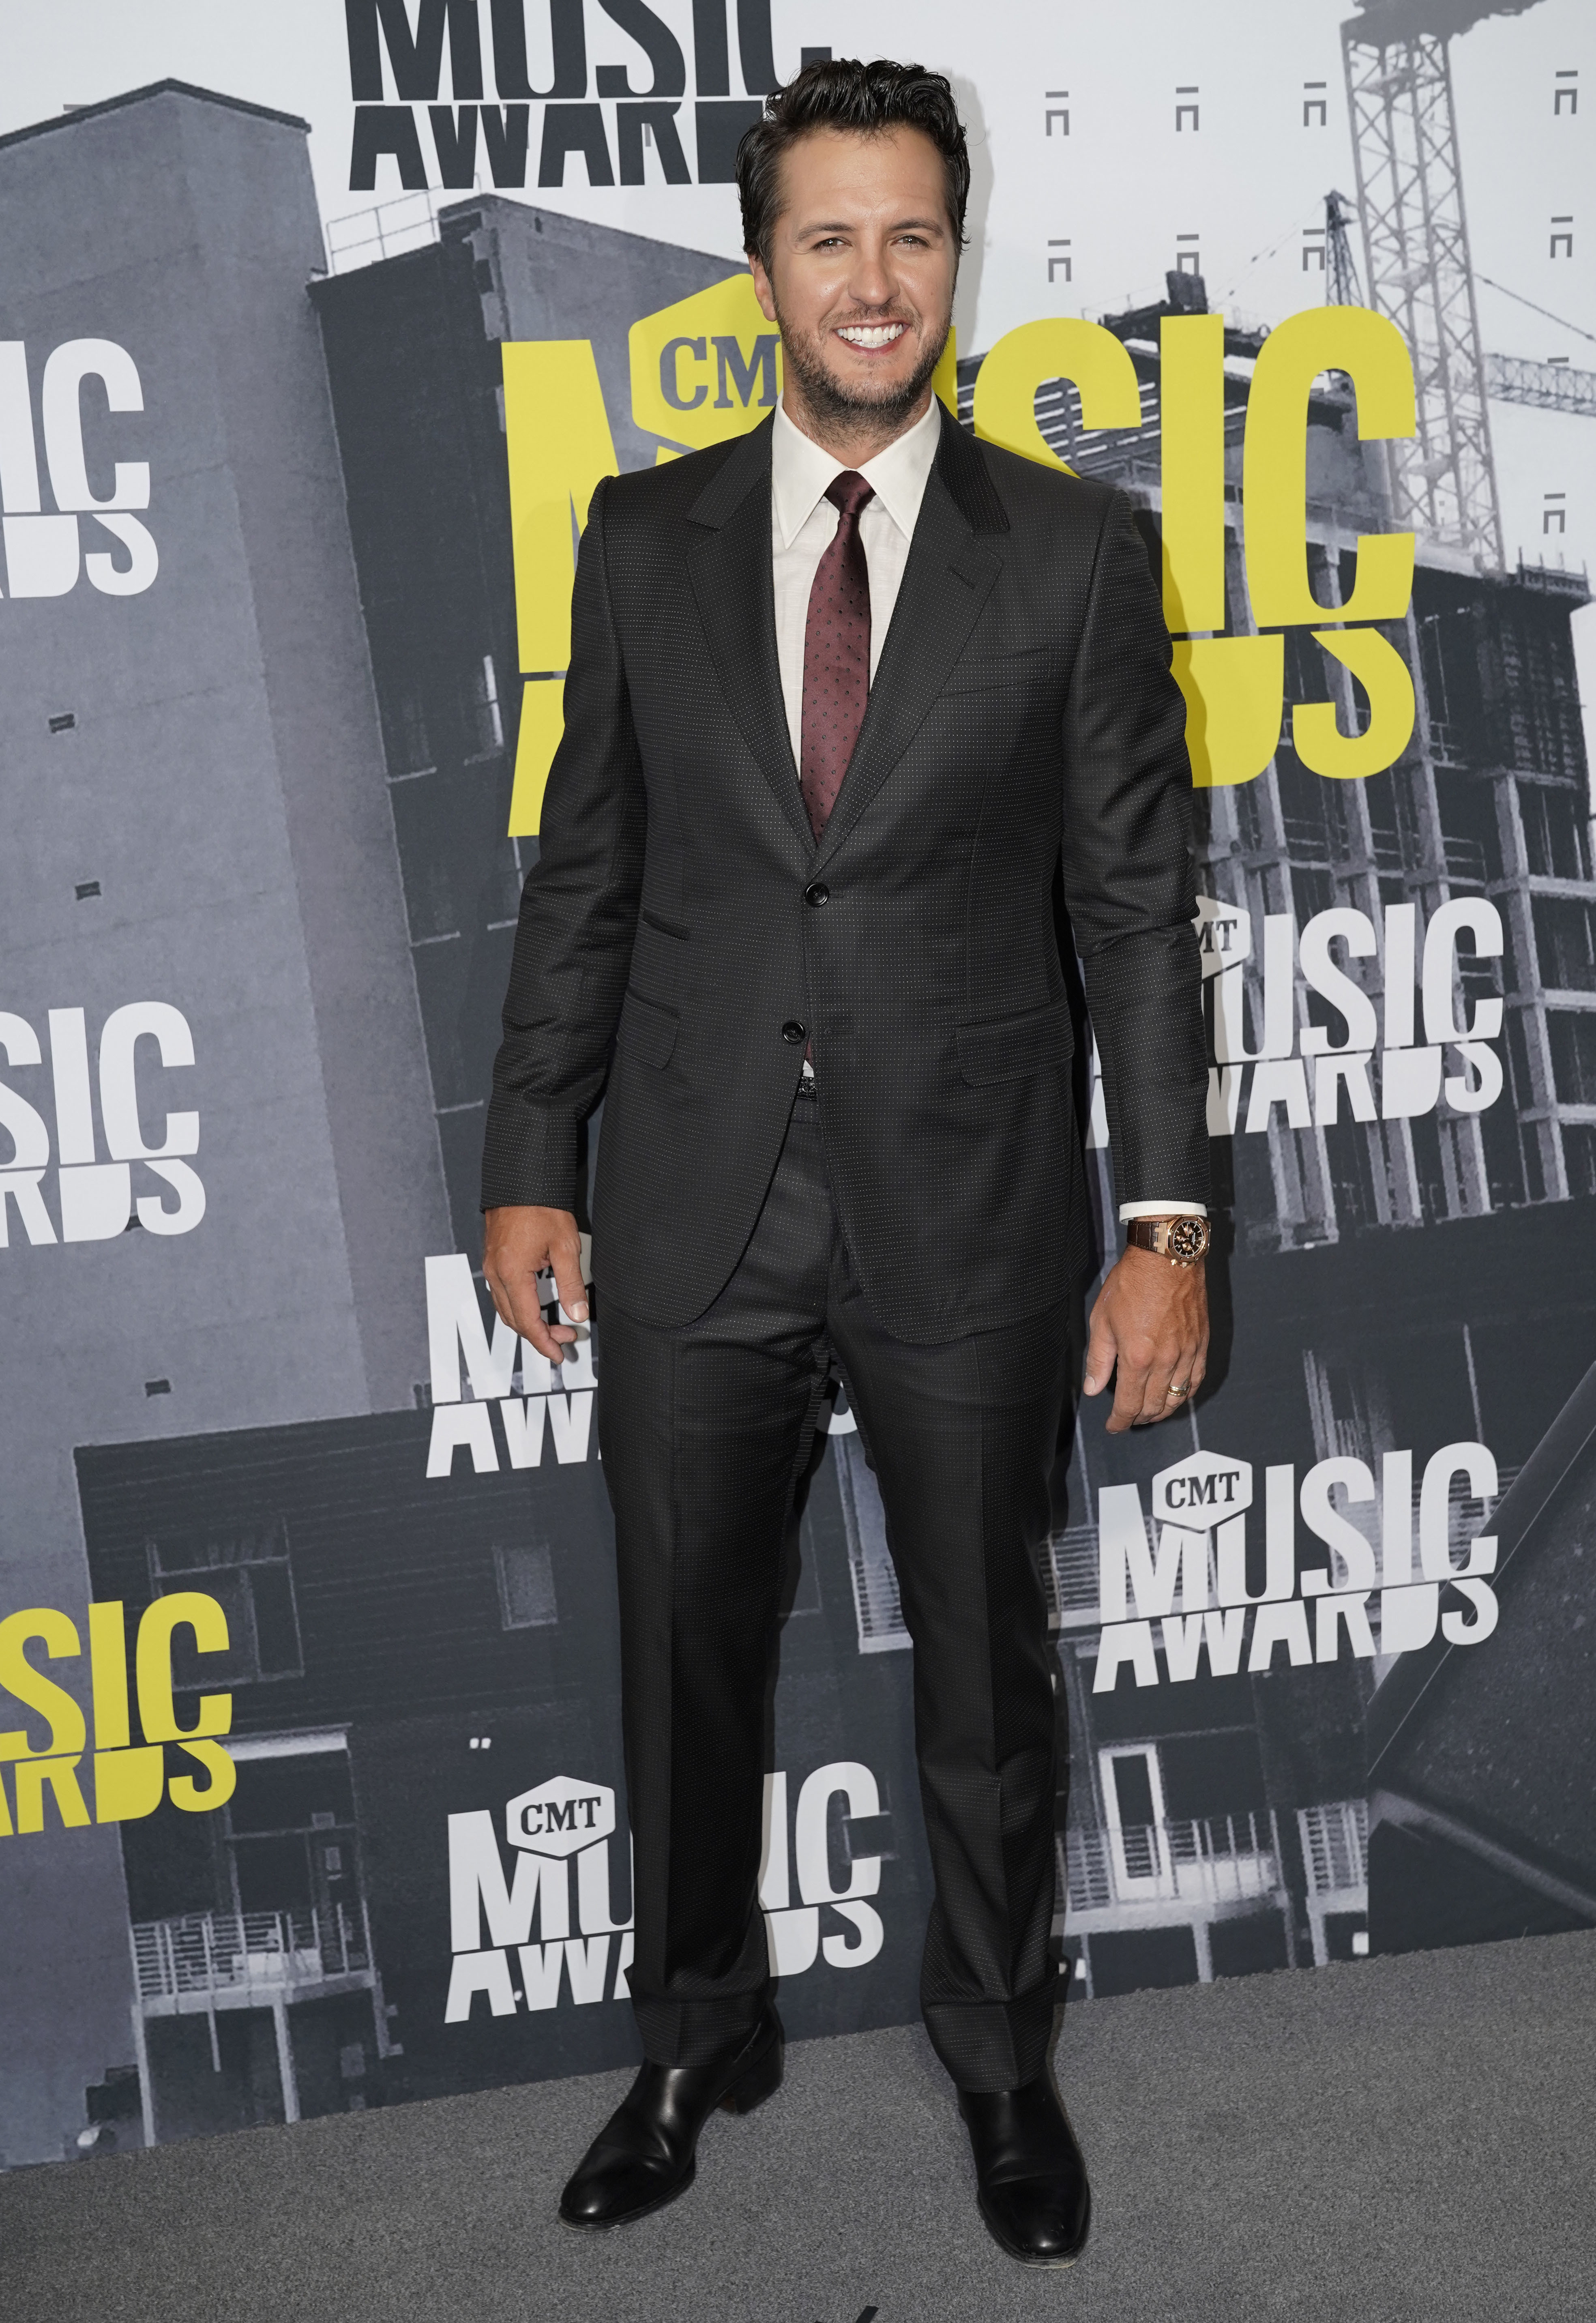 Luke Bryan attends the CMT Music Awards at the Music City Center in Nashville on June 7, 2017.